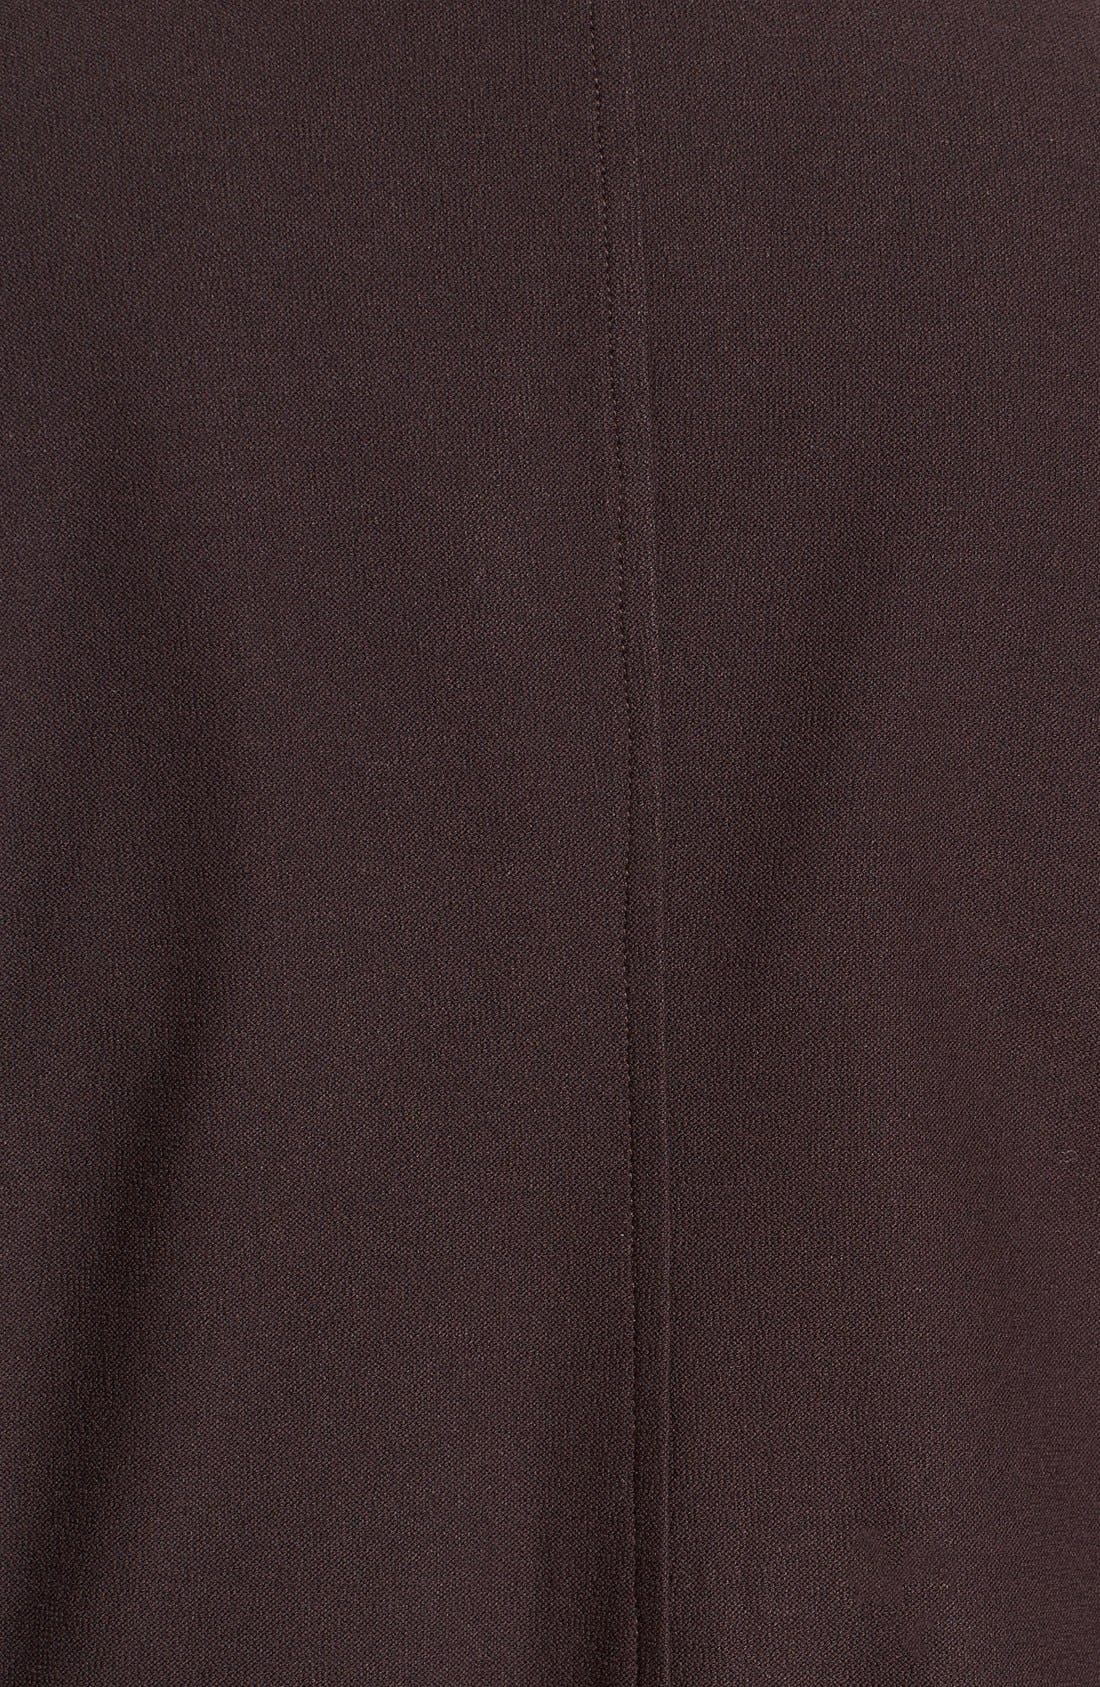 Washable Stretch Crepe Stand Collar Jacket,                             Alternate thumbnail 13, color,